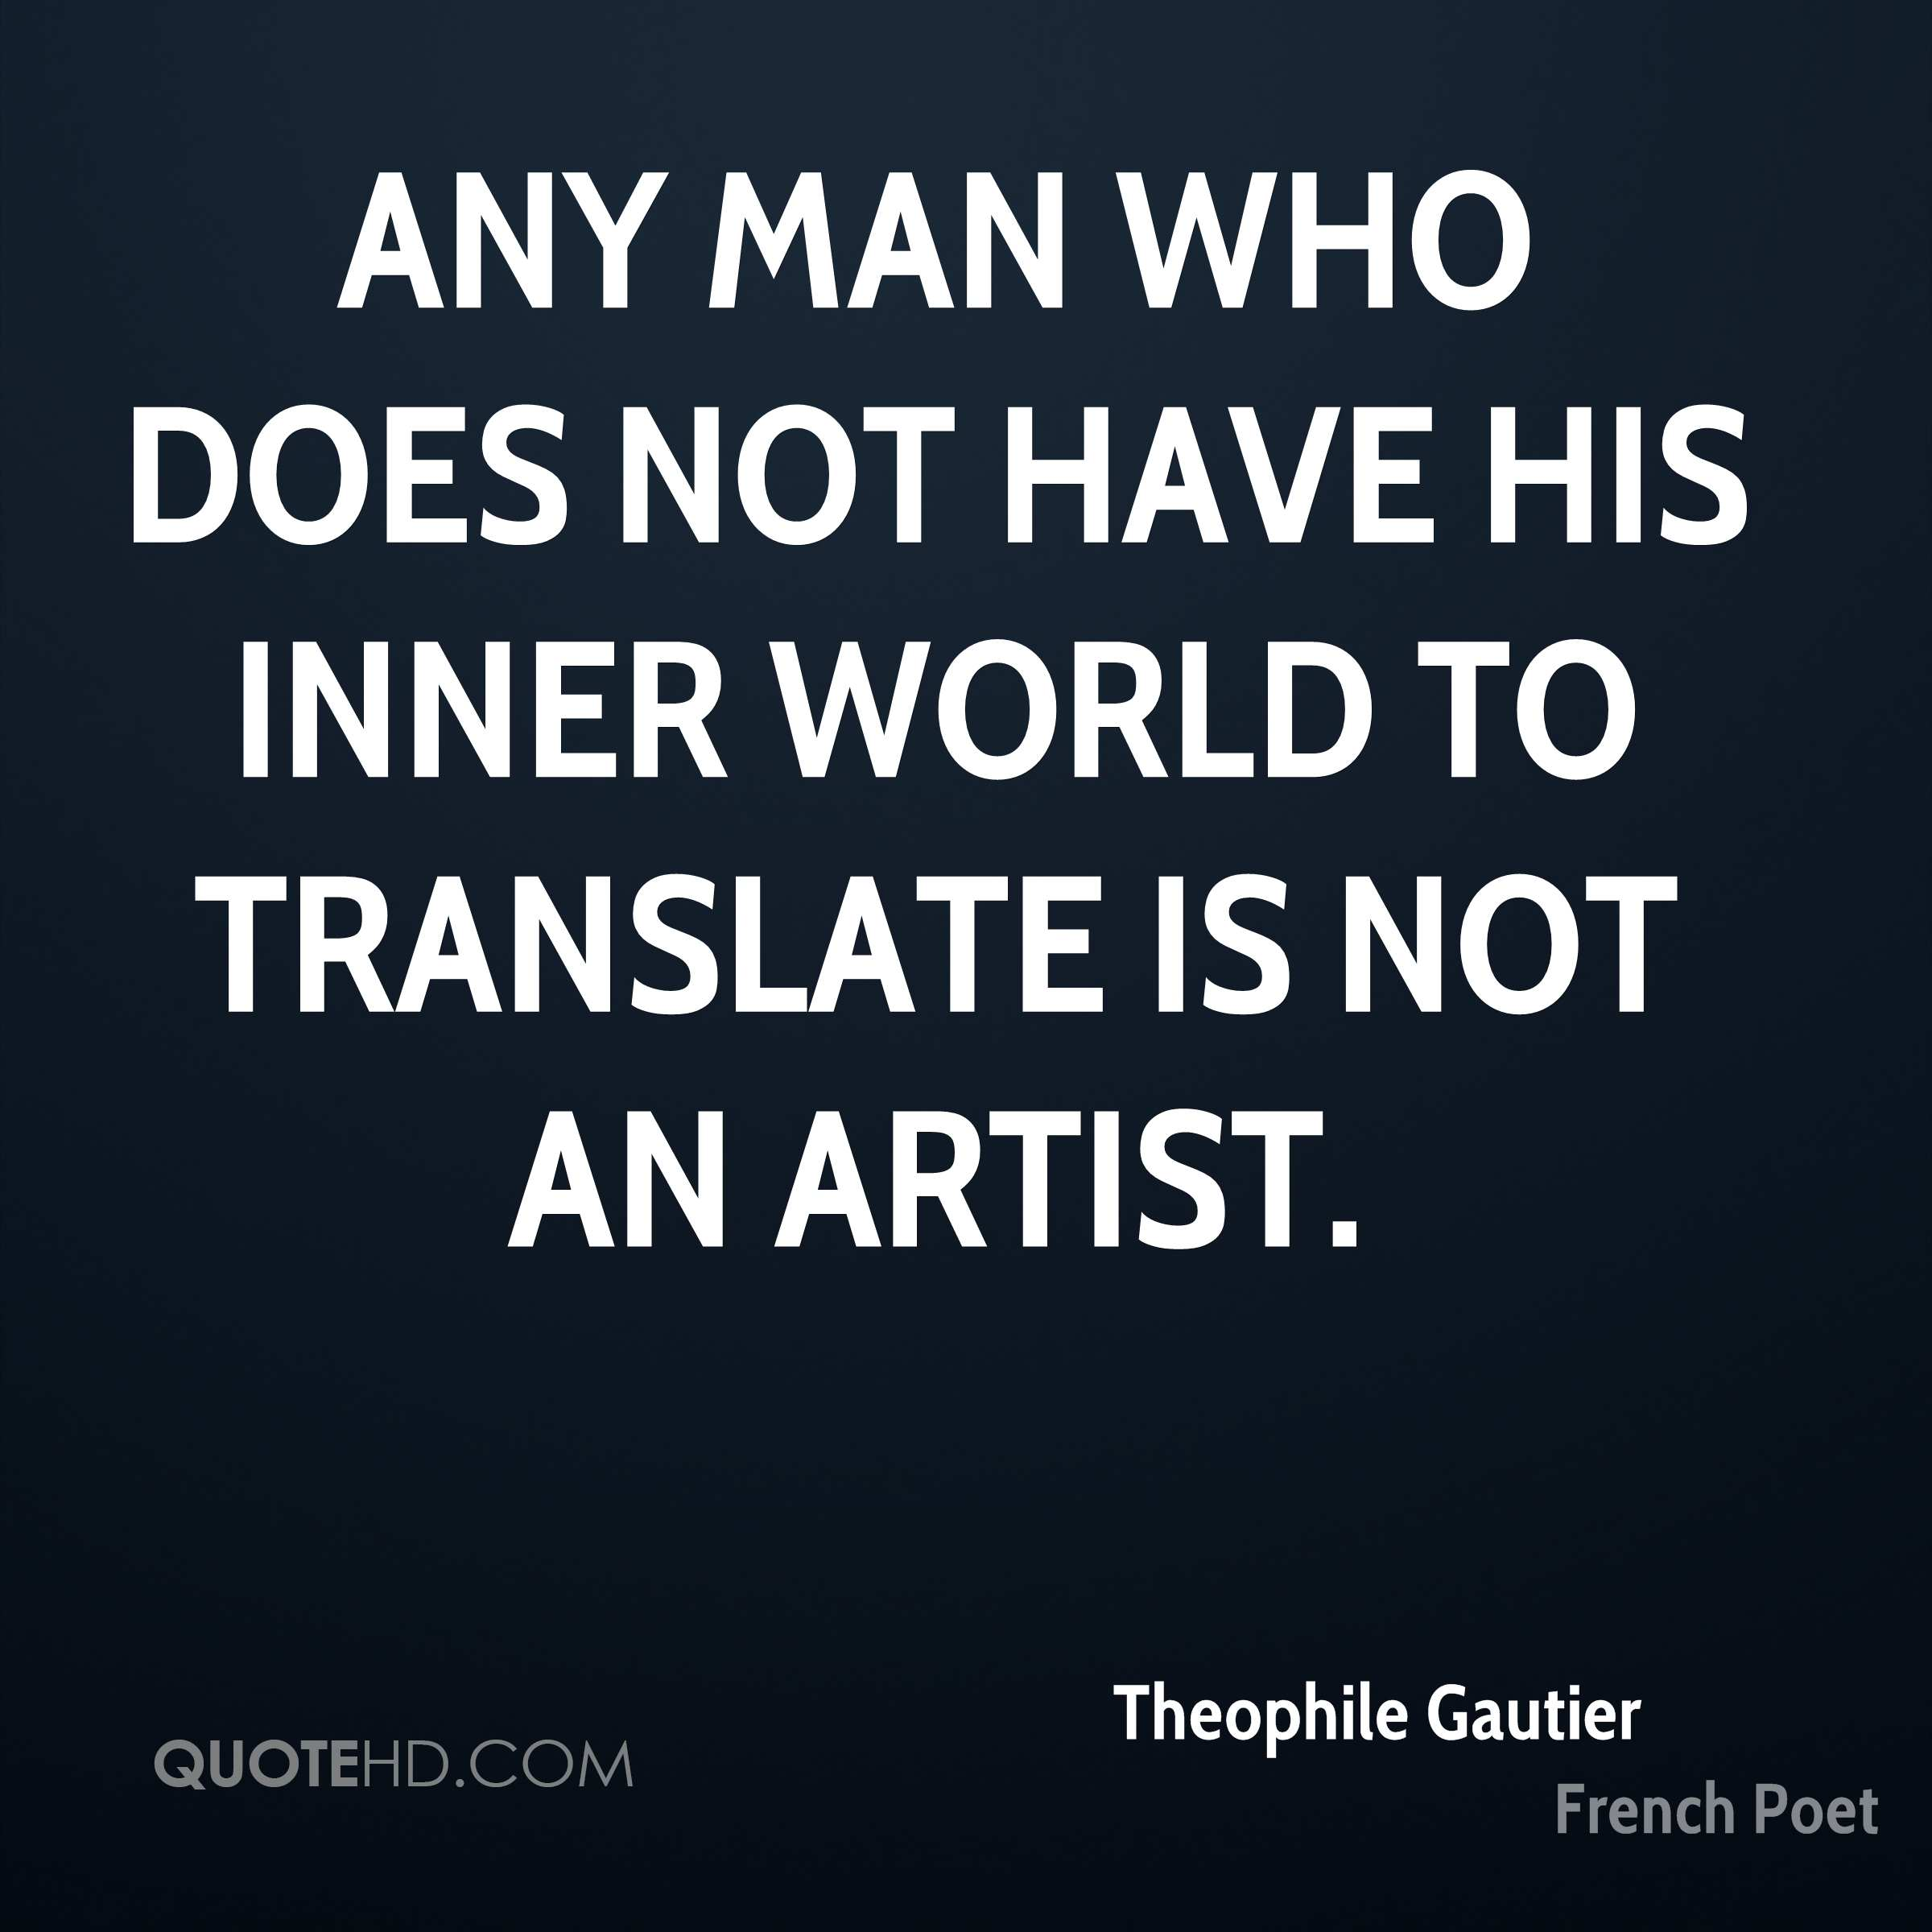 Any man who does not have his inner world to translate is not an artist.